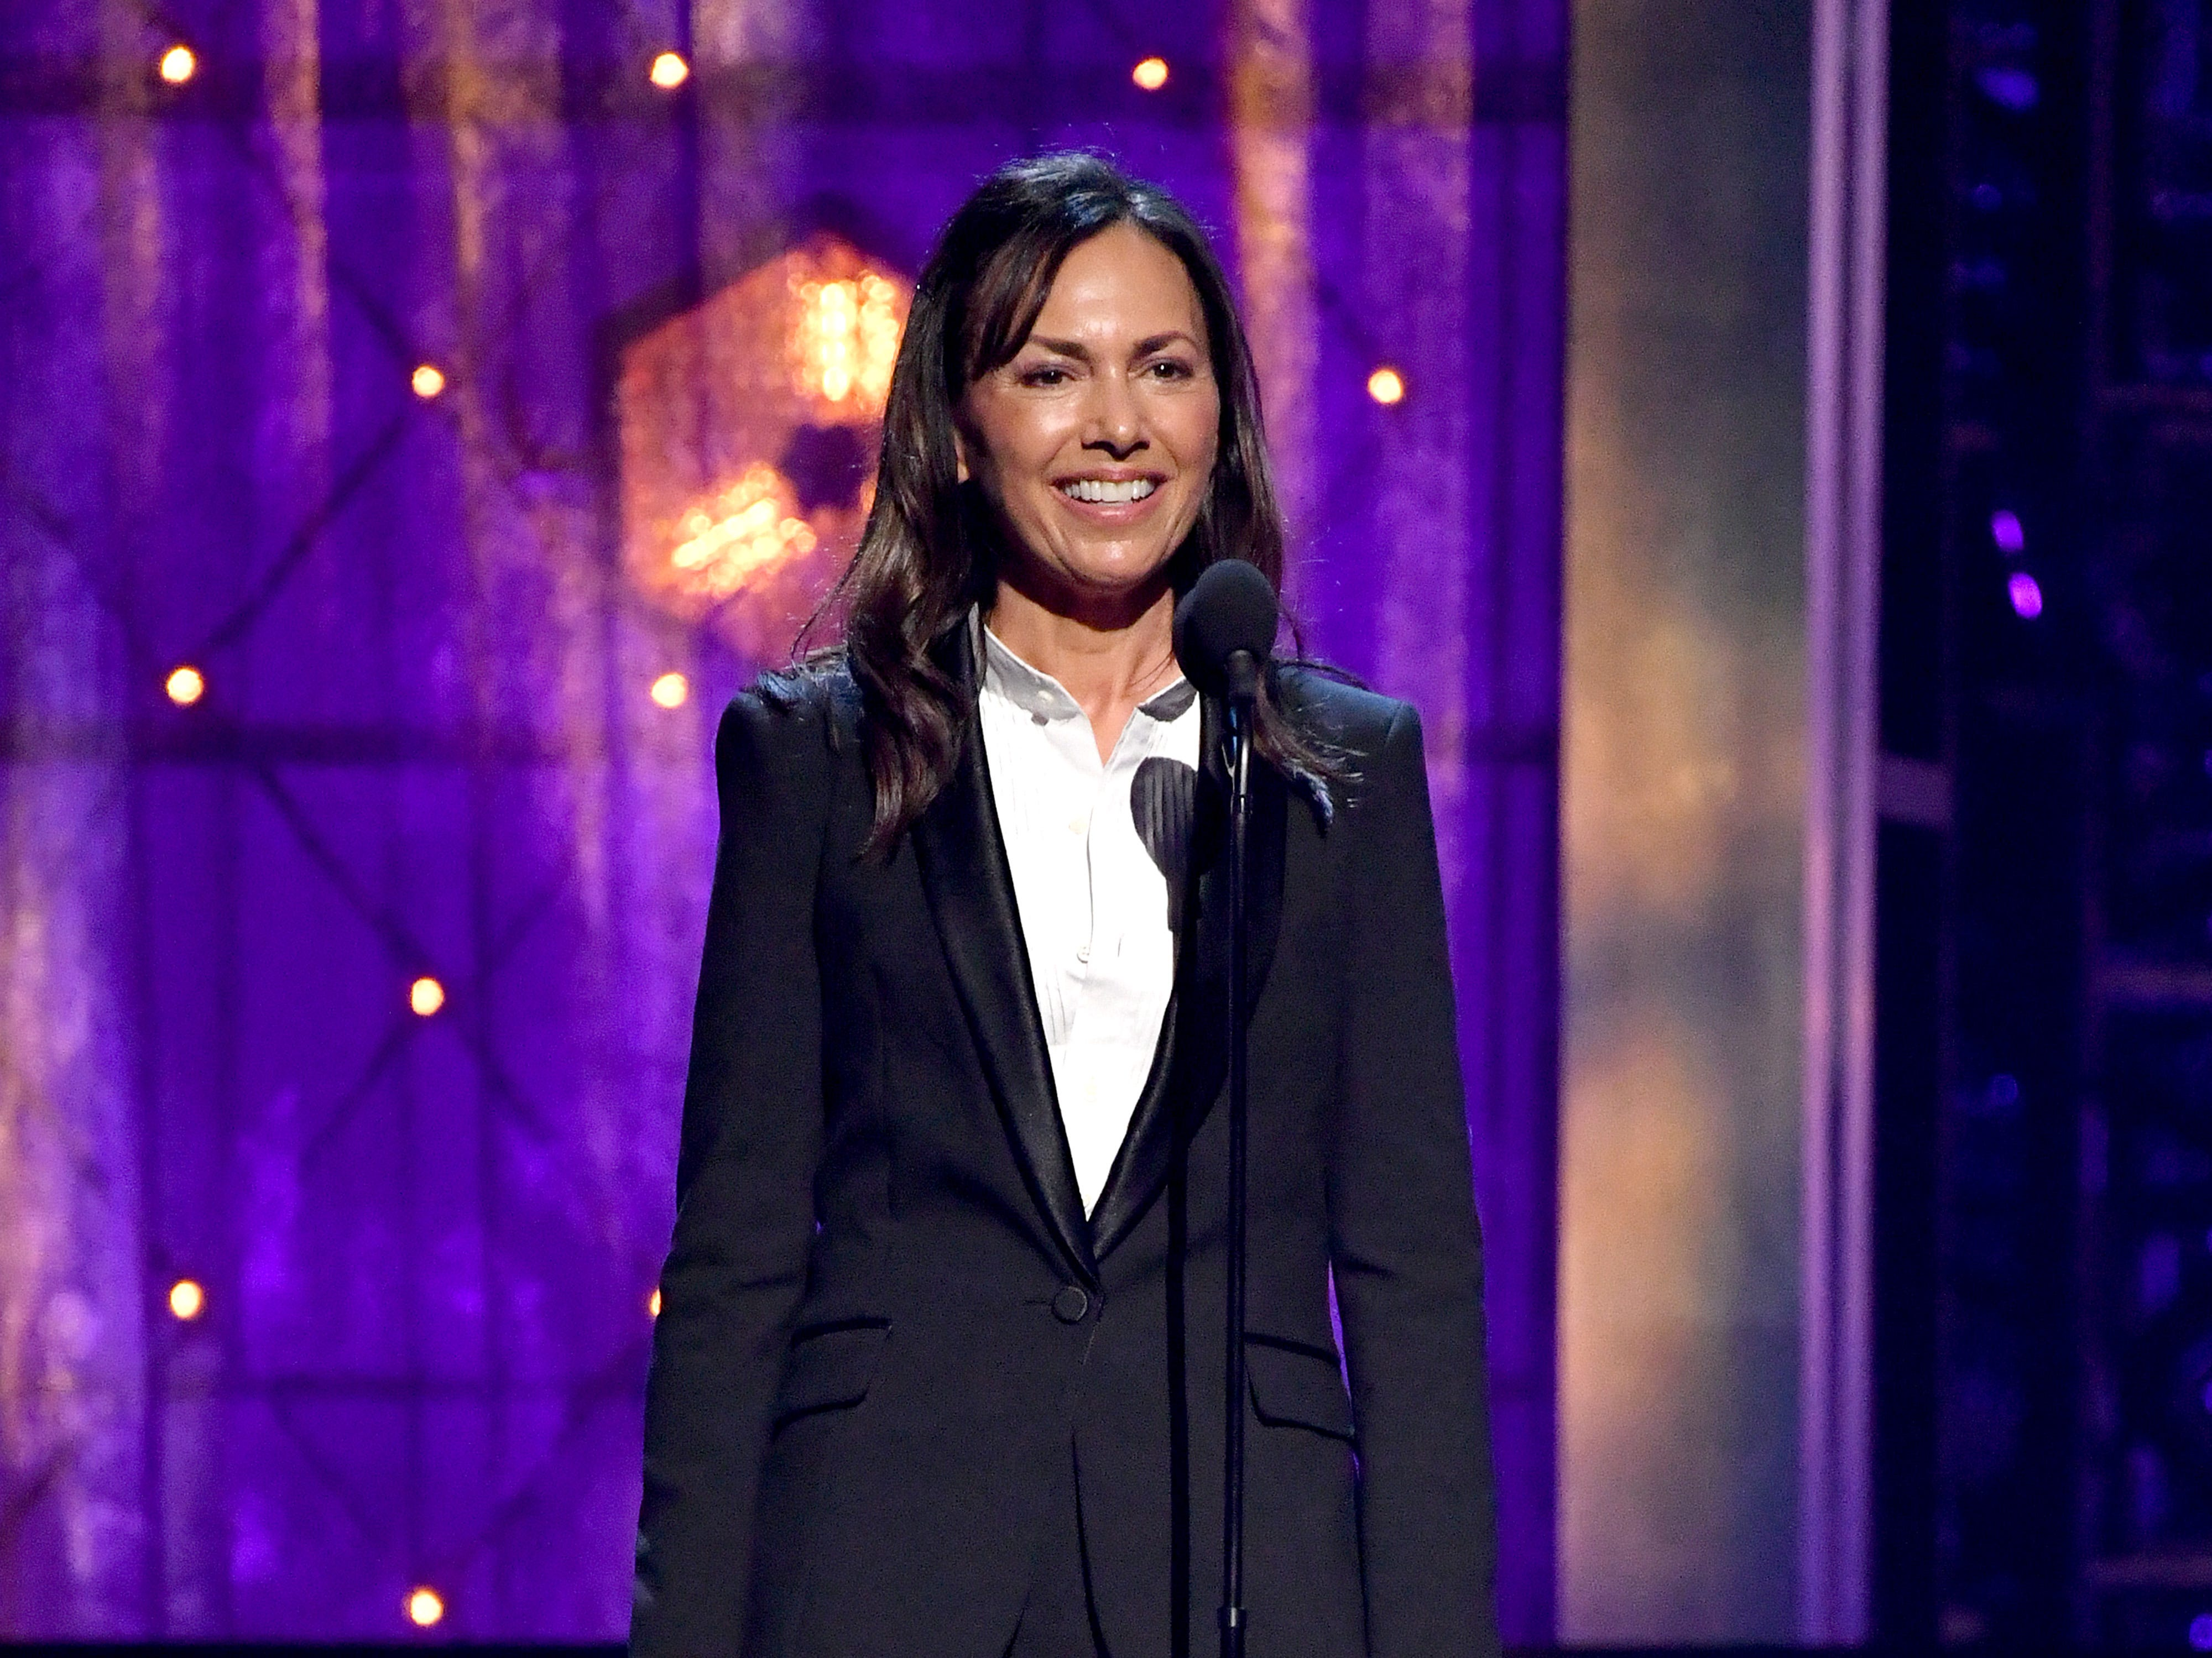 NEW YORK, NEW YORK - MARCH 29: The Bangles Susanna Hoffs speaks onstage during the 2019 Rock & Roll Hall Of Fame Induction Ceremony - Show at Barclays Center on March 29, 2019 in New York City. (Photo by Mike Coppola/WireImage) ORG XMIT: 775320663 ORIG FILE ID: 1139196541